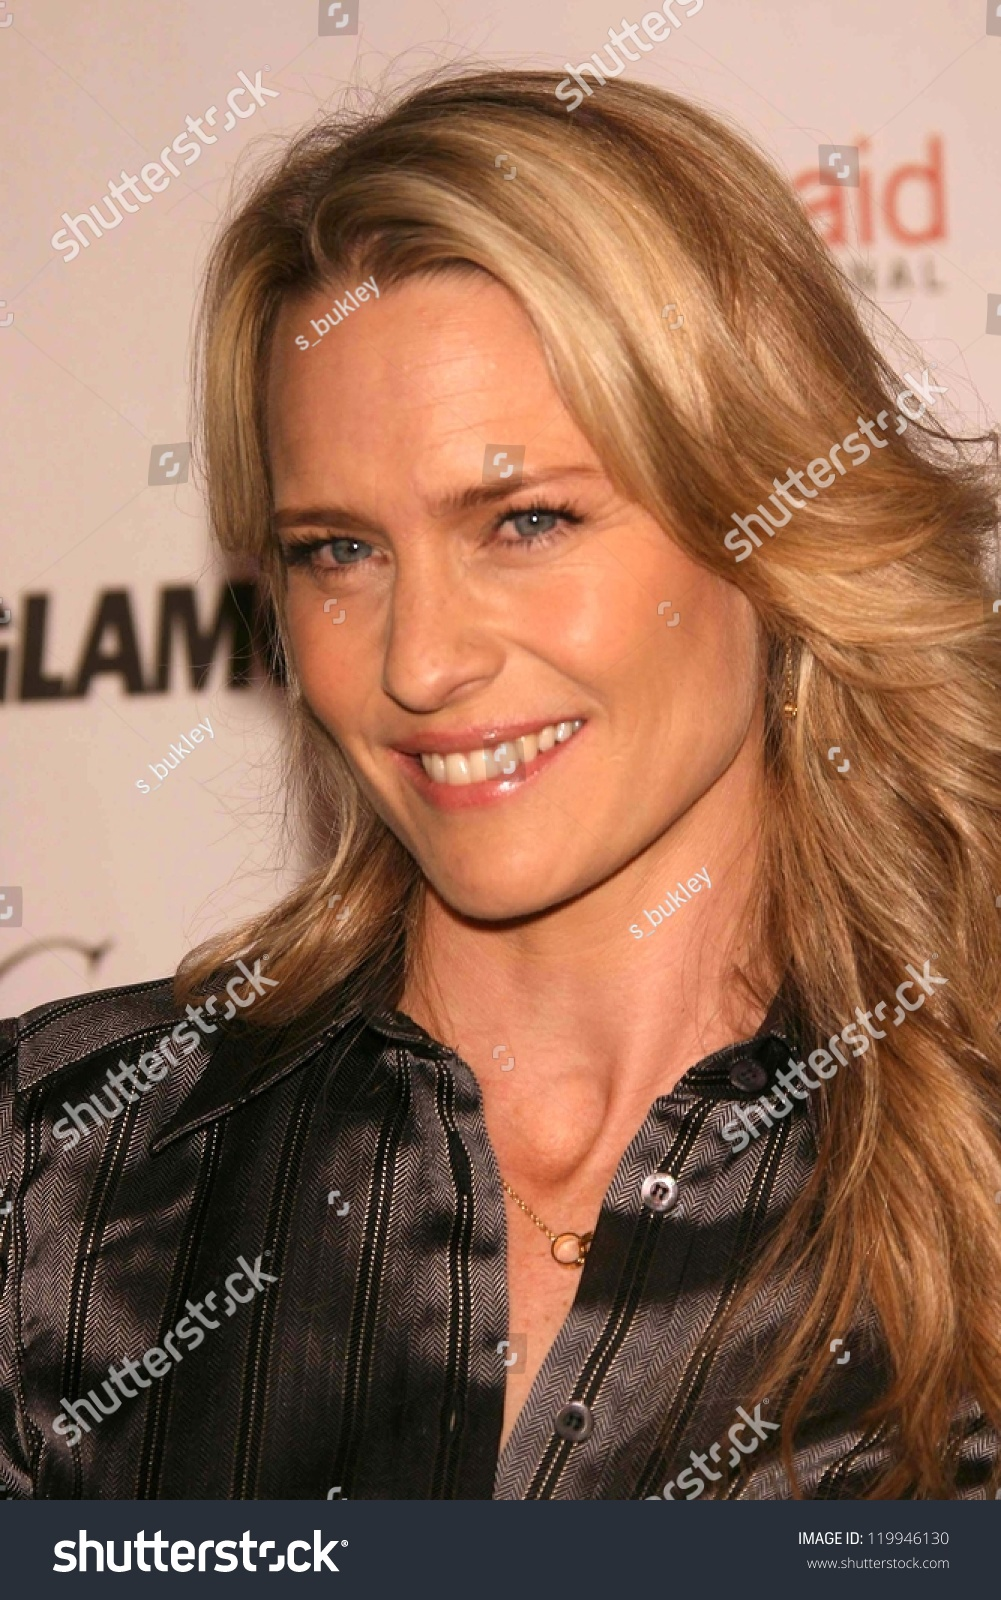 Robin Wright Penn At The Glamour Reel Moments Short Film Series